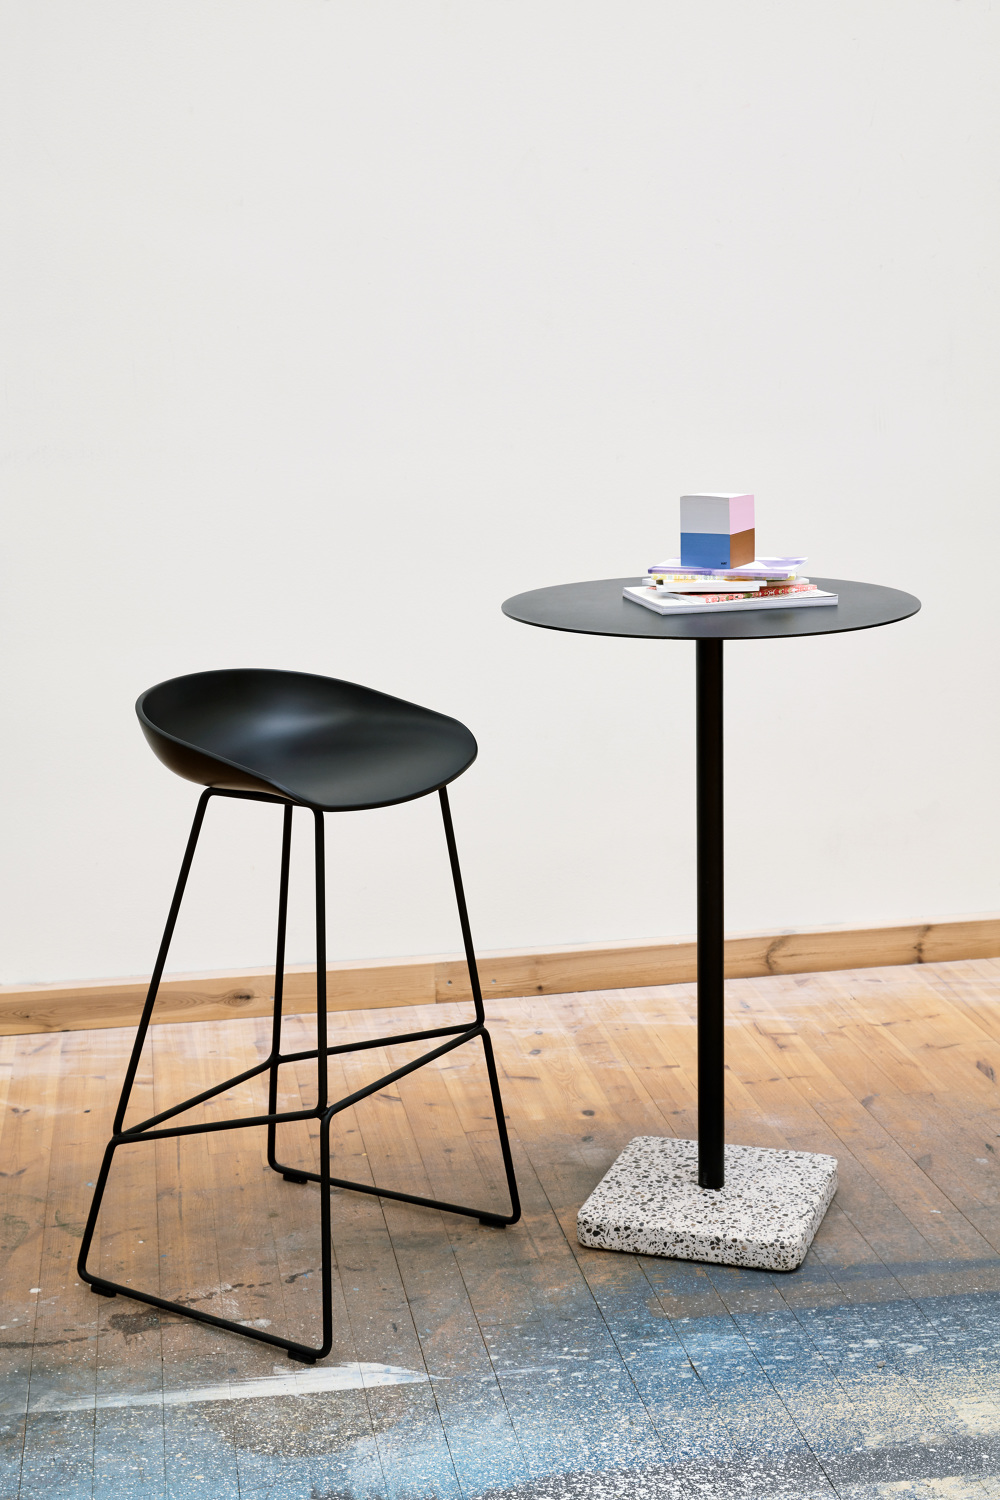 Features A Round  Or Square Shaped Table Top Crafted In Highly Functional  Electro Galvanized Steel And Powder Coated To Make It Extra Resilient.